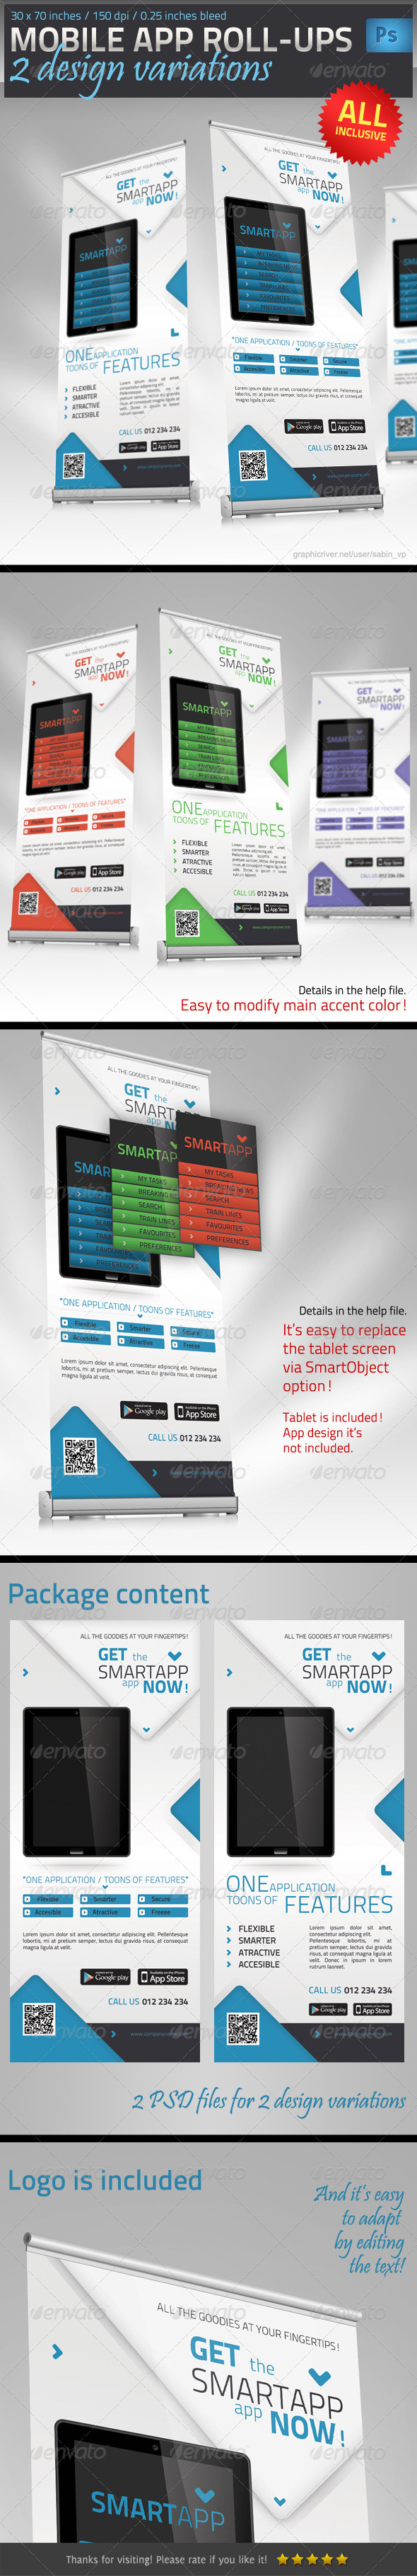 Mobile App Promotion Roll-Up Template by sabin_vp | GraphicRiver